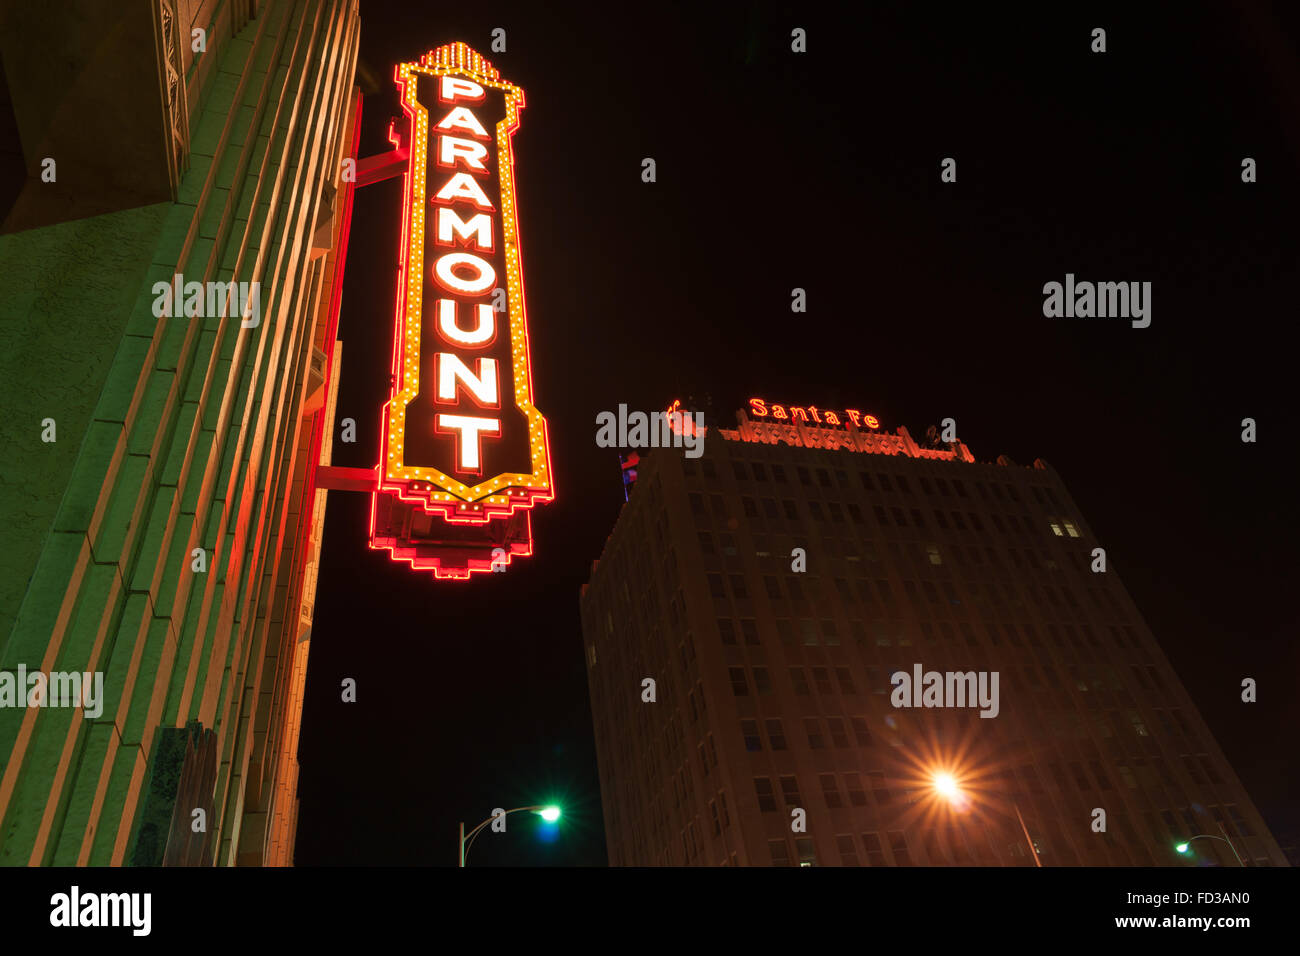 Urban neon signs and lighting historic Paramount Theater built in 1932 and Santa Fe building sign originally office - Stock Image